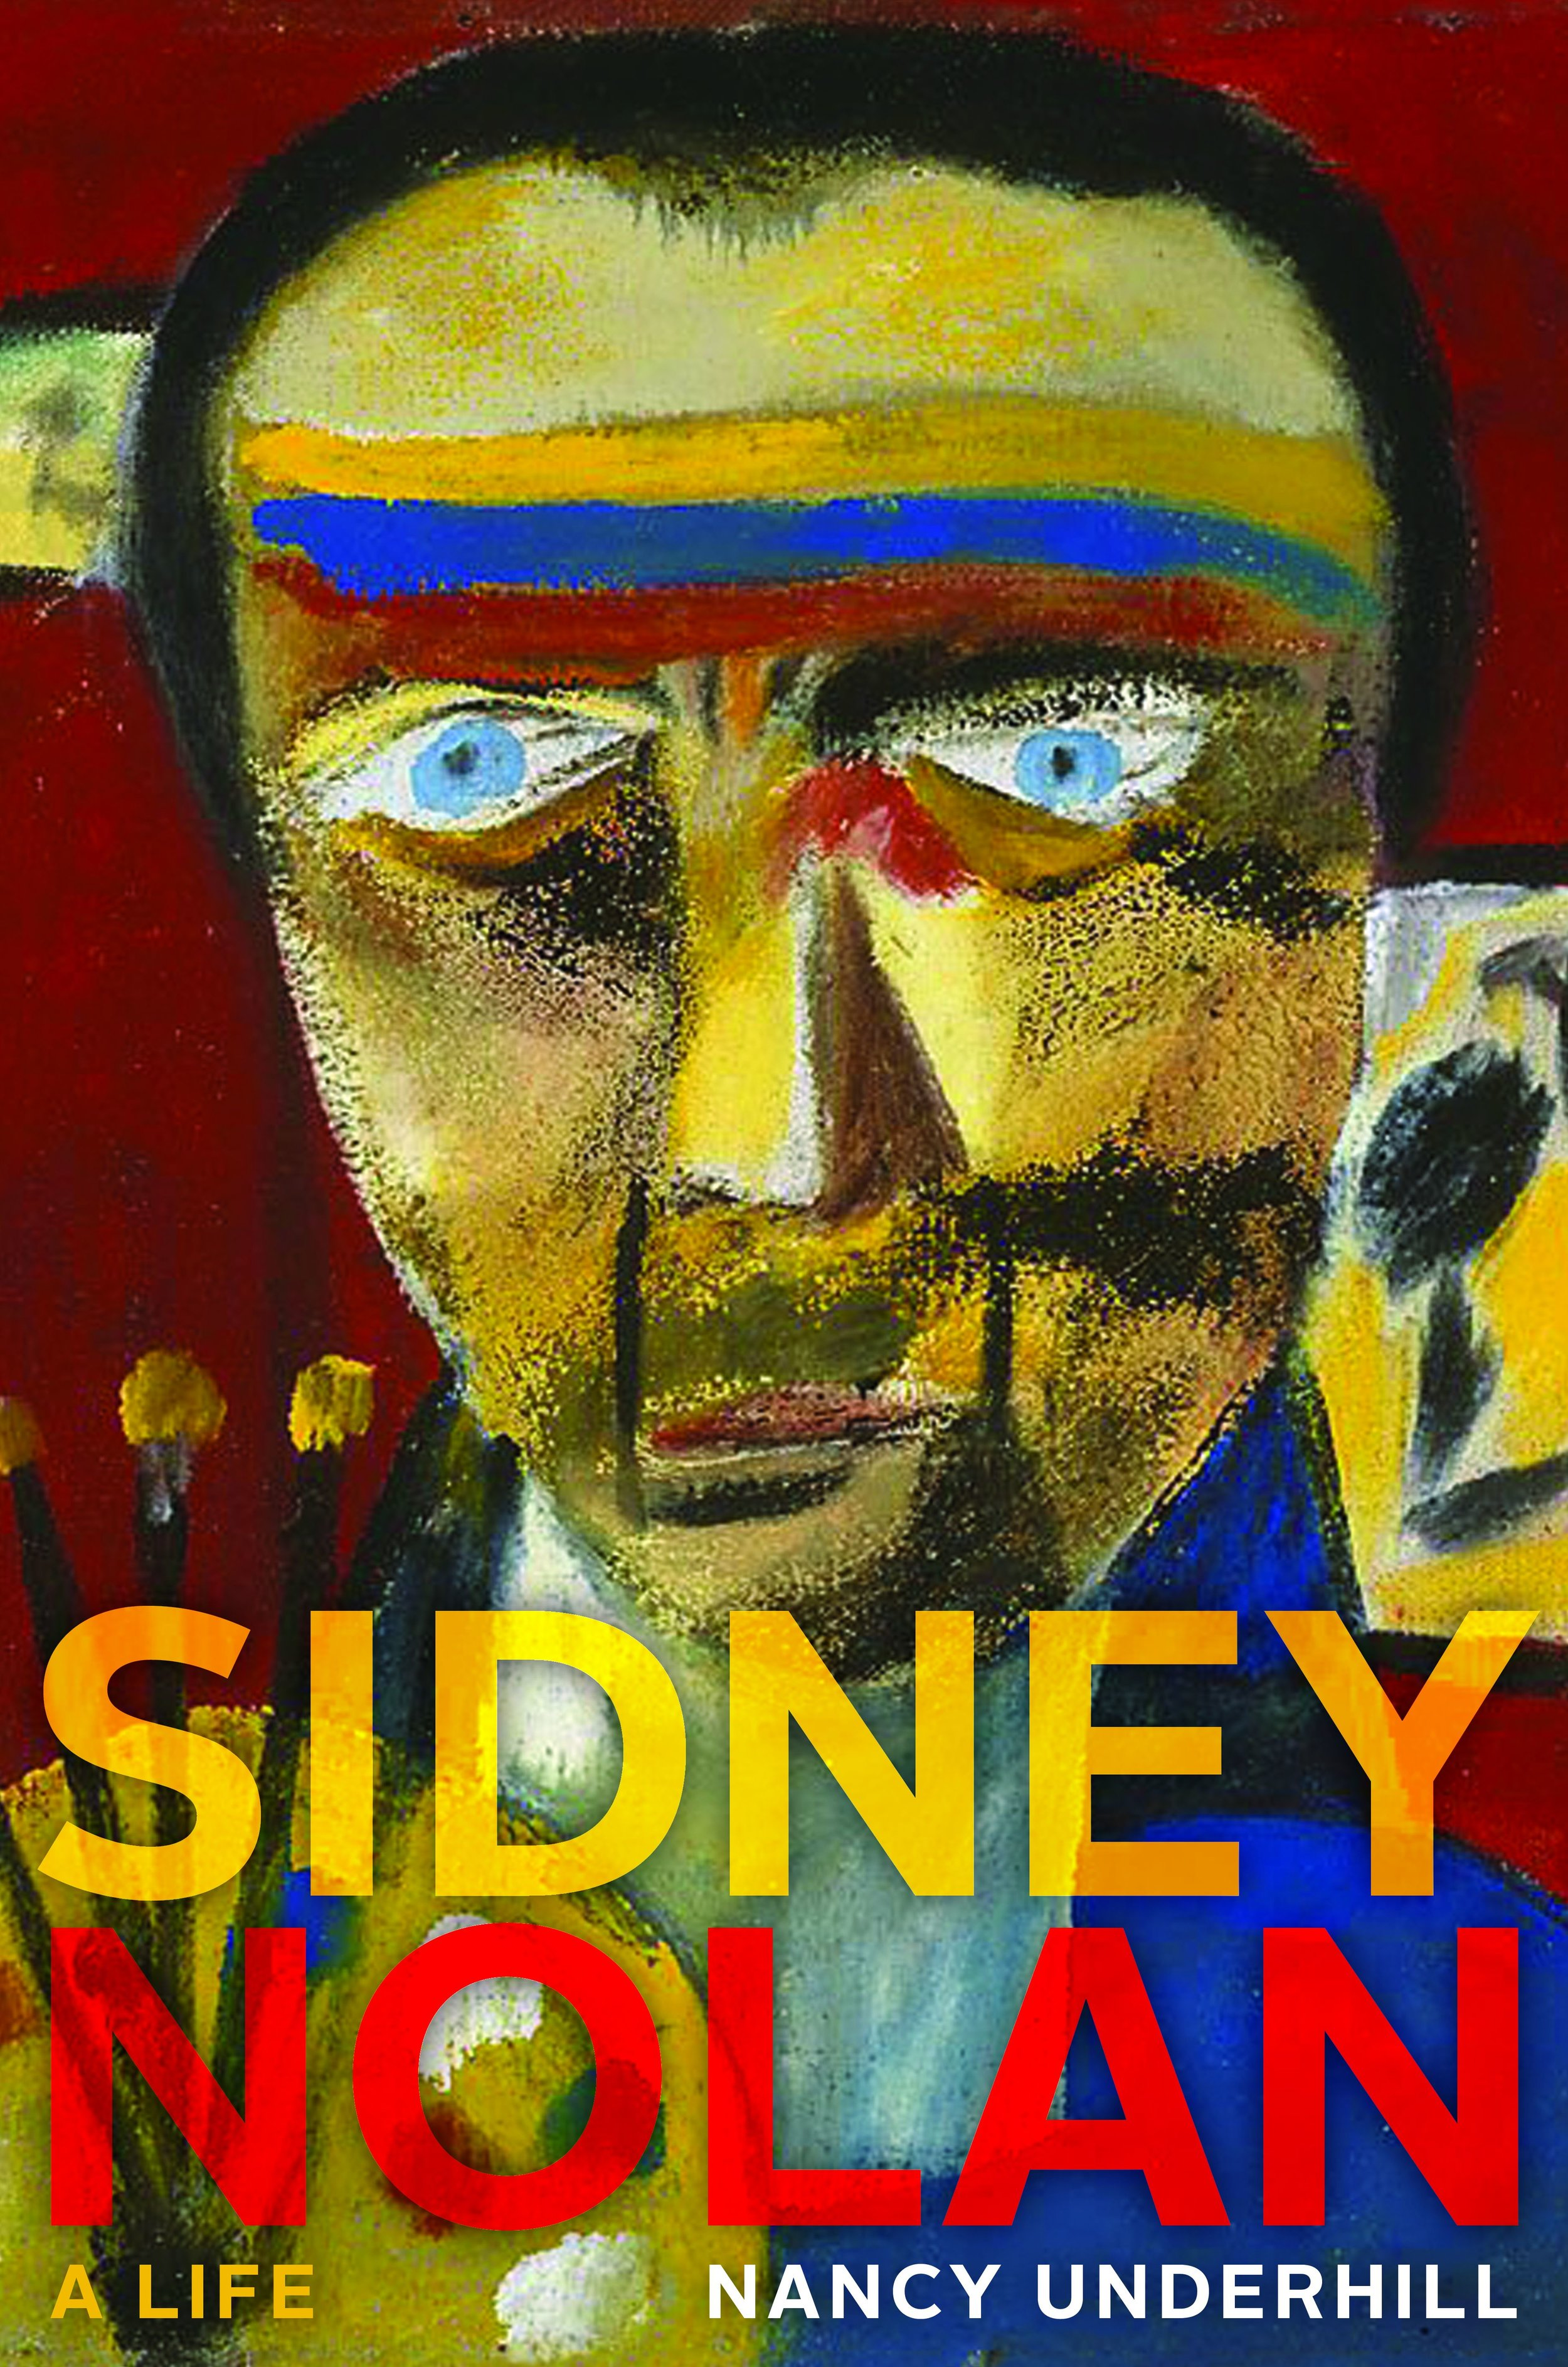 Sidney Nolan: A Life , photograph courtesy of New South Publishing.